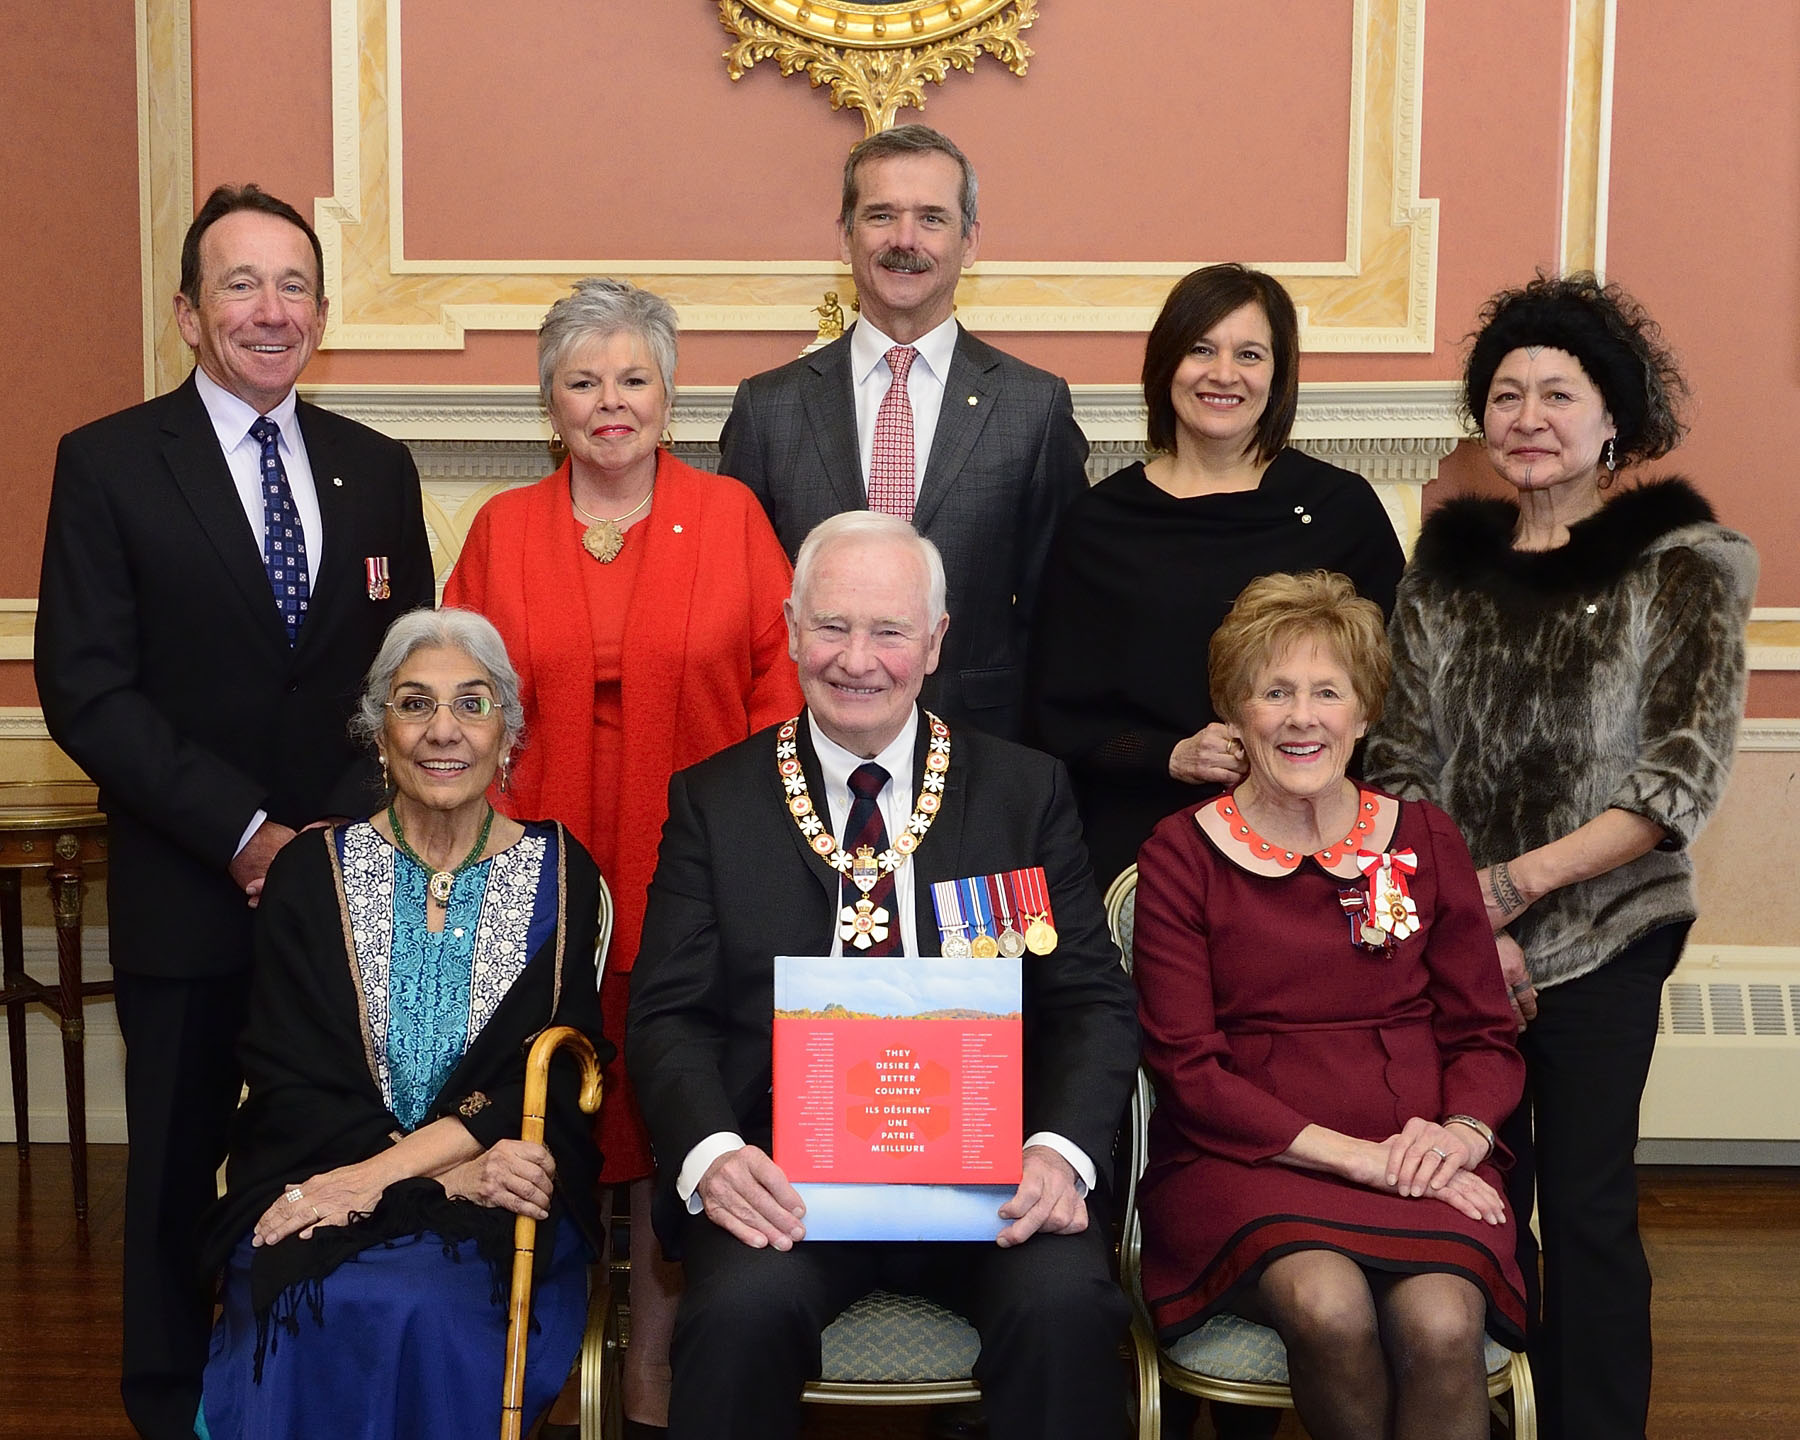 Some of the Order of Canada members featured in the book They Desire a Better Country: The Order of Canada in 50 Stories attended this special ceremony. Back row, from left to right: John Stanton, Roberta L. Jamieson, Chris A. Hadfield, Édith Cloutier and Aaju Peter. Front row: Alia Hogben and Their Excellencies.